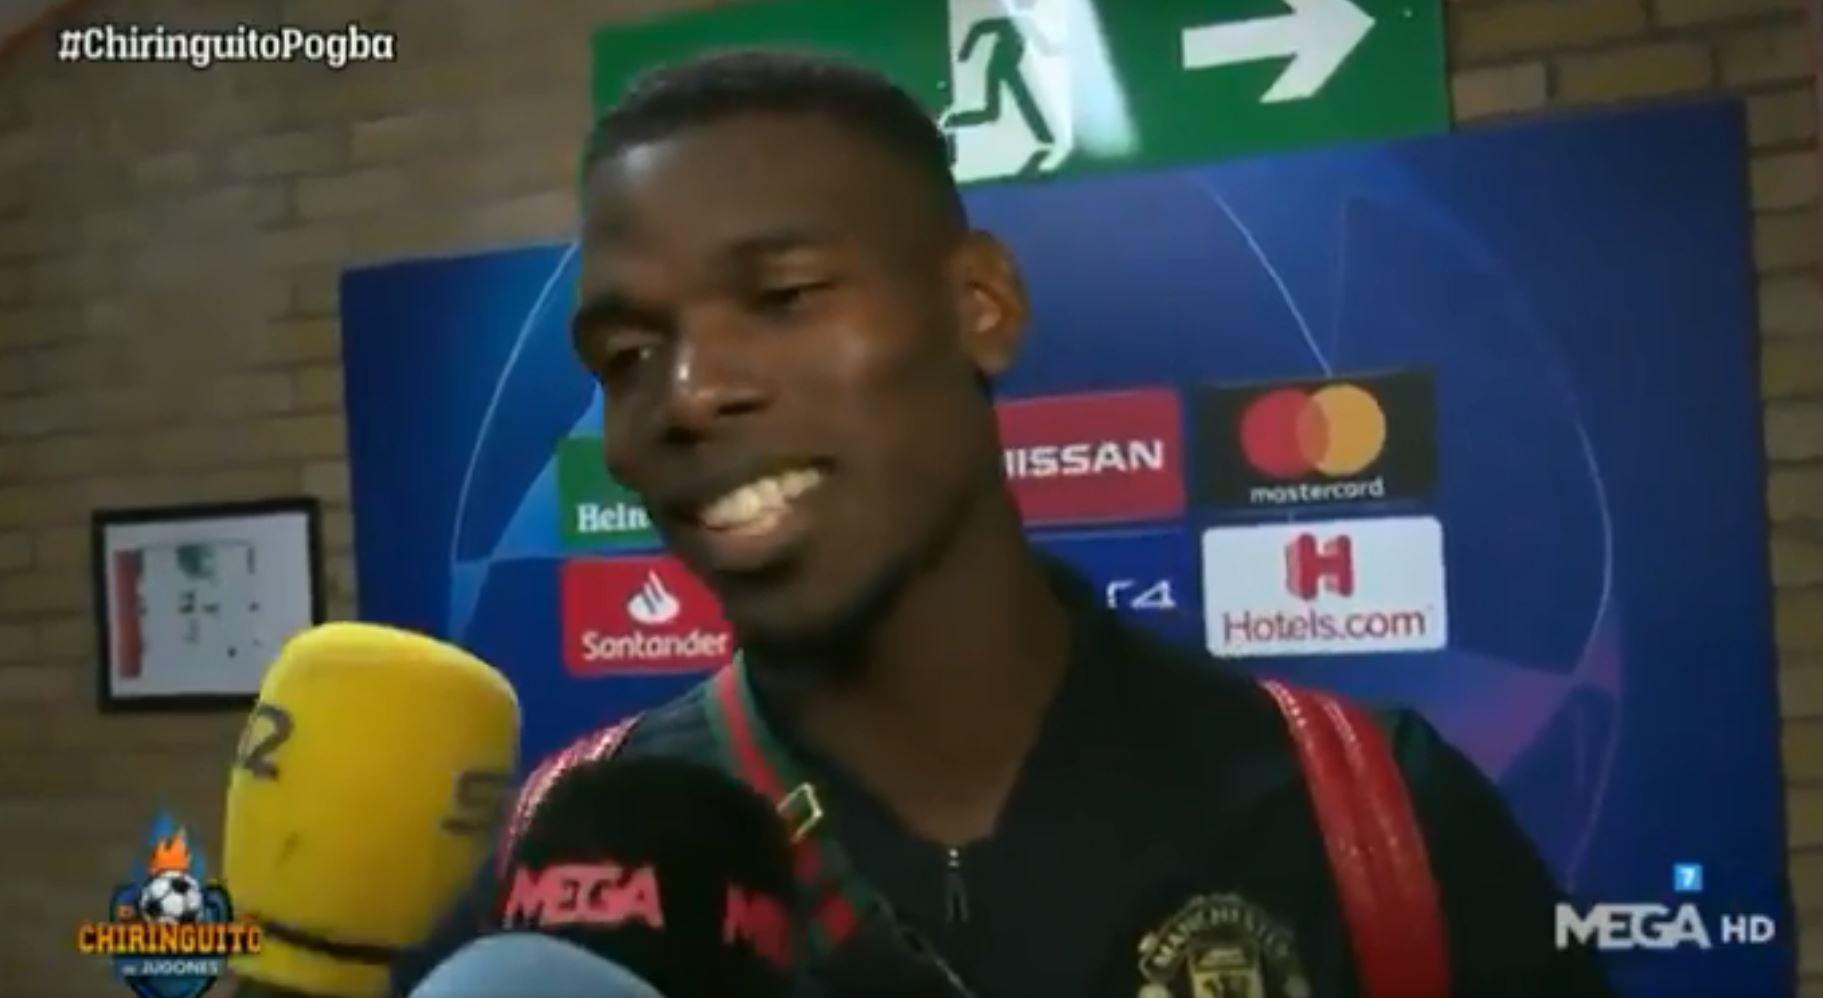 Paul Pogba dodges Real Madrid question after Manchester United's defeat to Barcelona